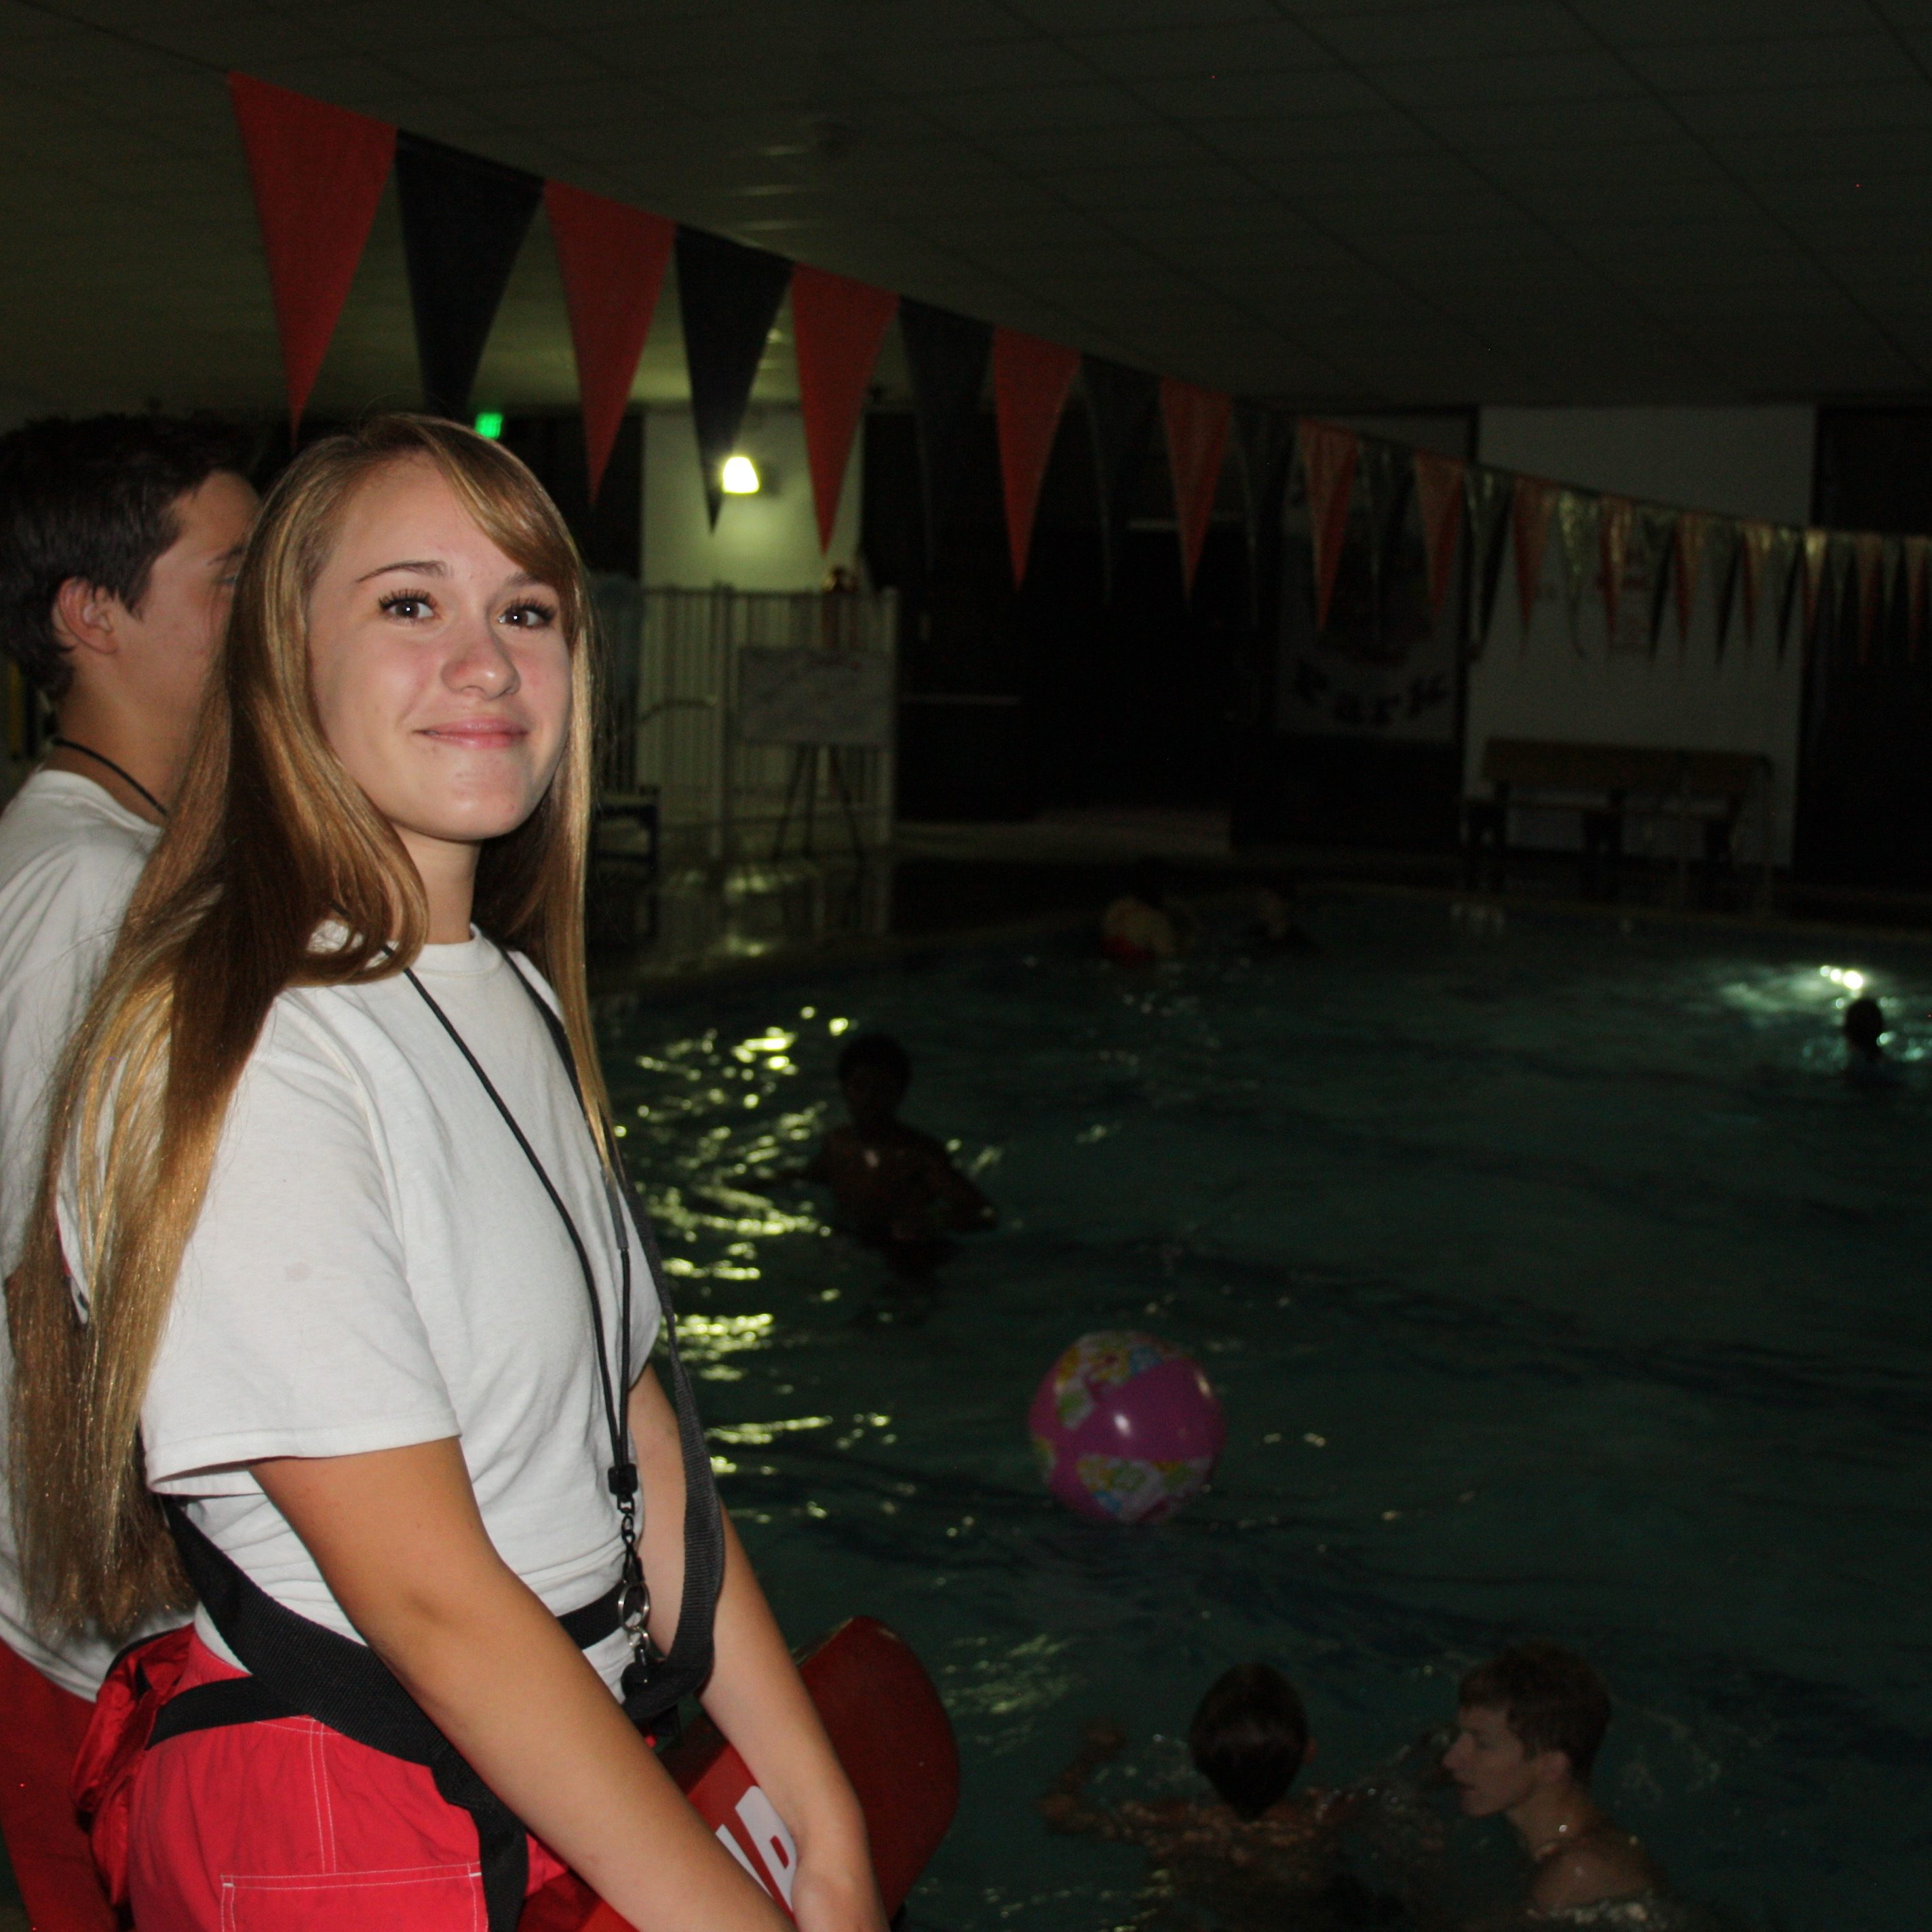 Savannah (First year Lifeguard)